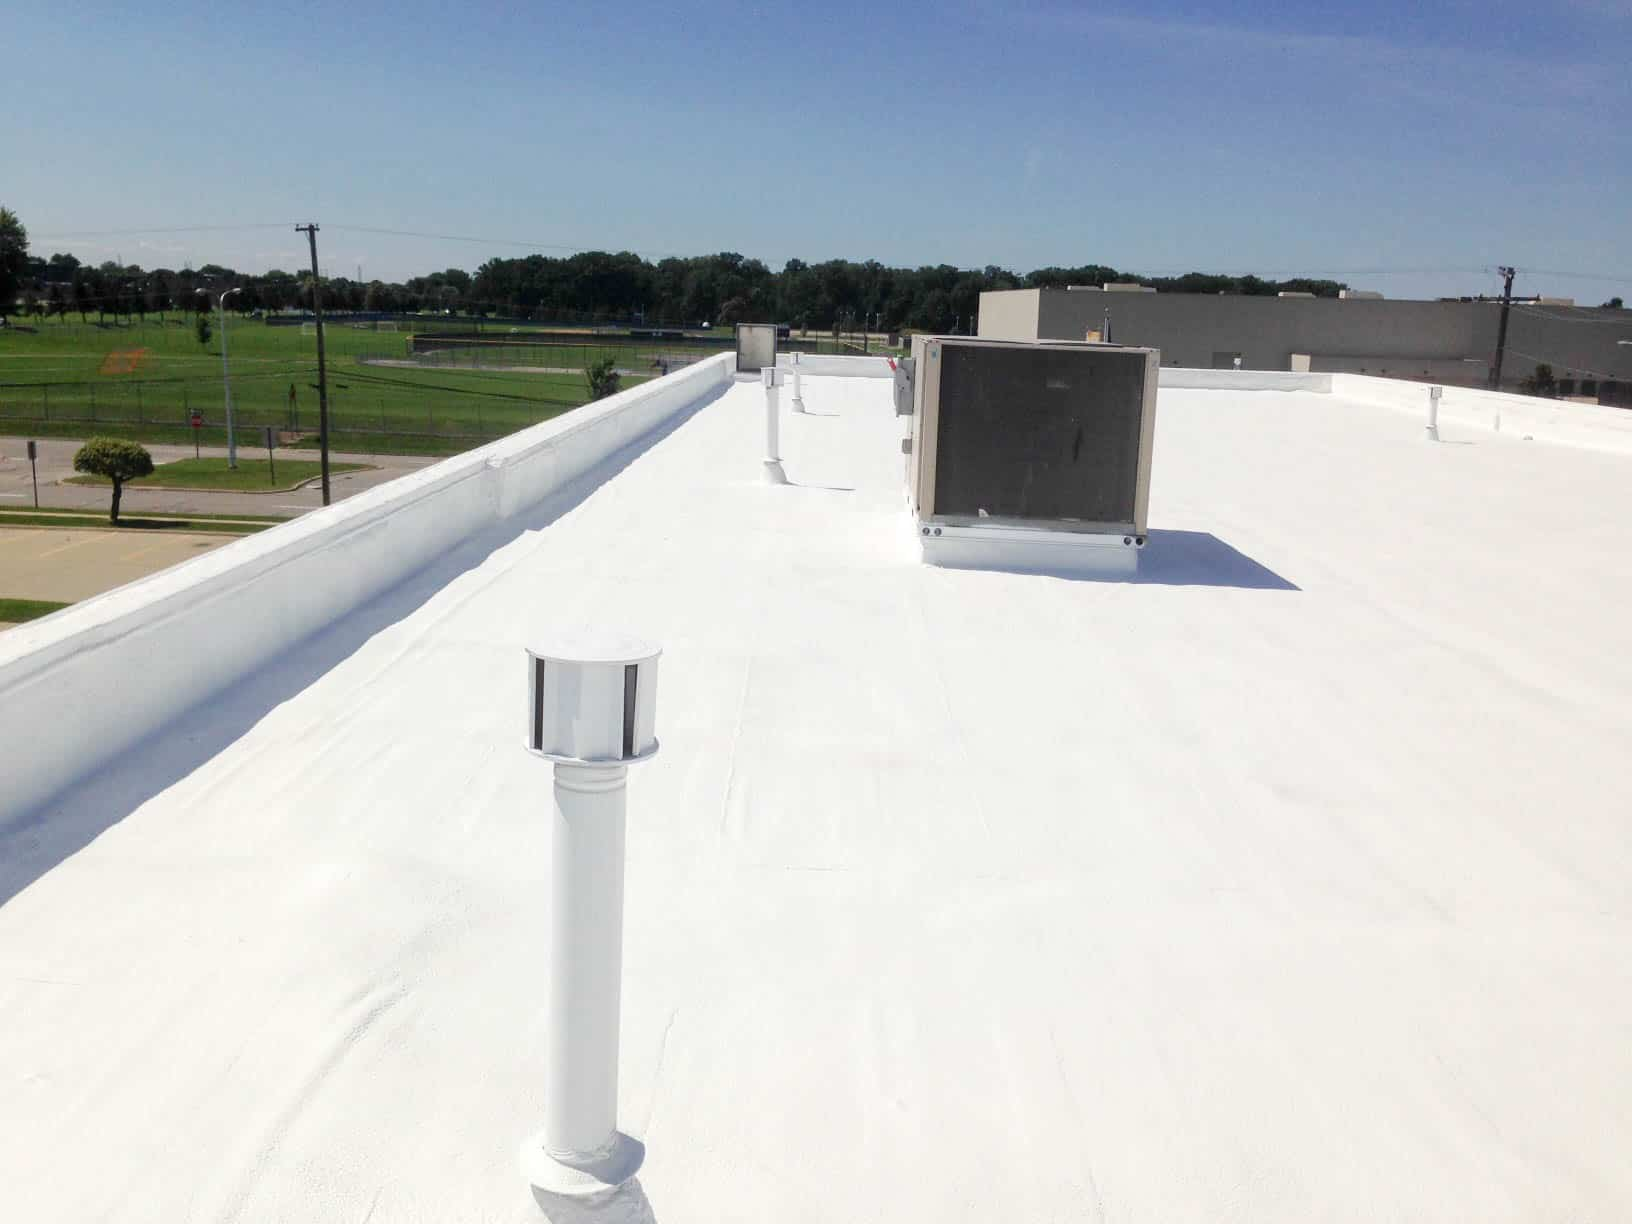 Lucius Commercial Roofing Flat Roof Restoration Commercial Flat Roof Restoration The Ure-A-Sil® System Request an Estimate https://www.youtube.com/watch?v=5d72hRKpUkg Renewable Roof Coating A lot of comm | Memphis | Germantown | Cordova | Bartlett |  Tennessee